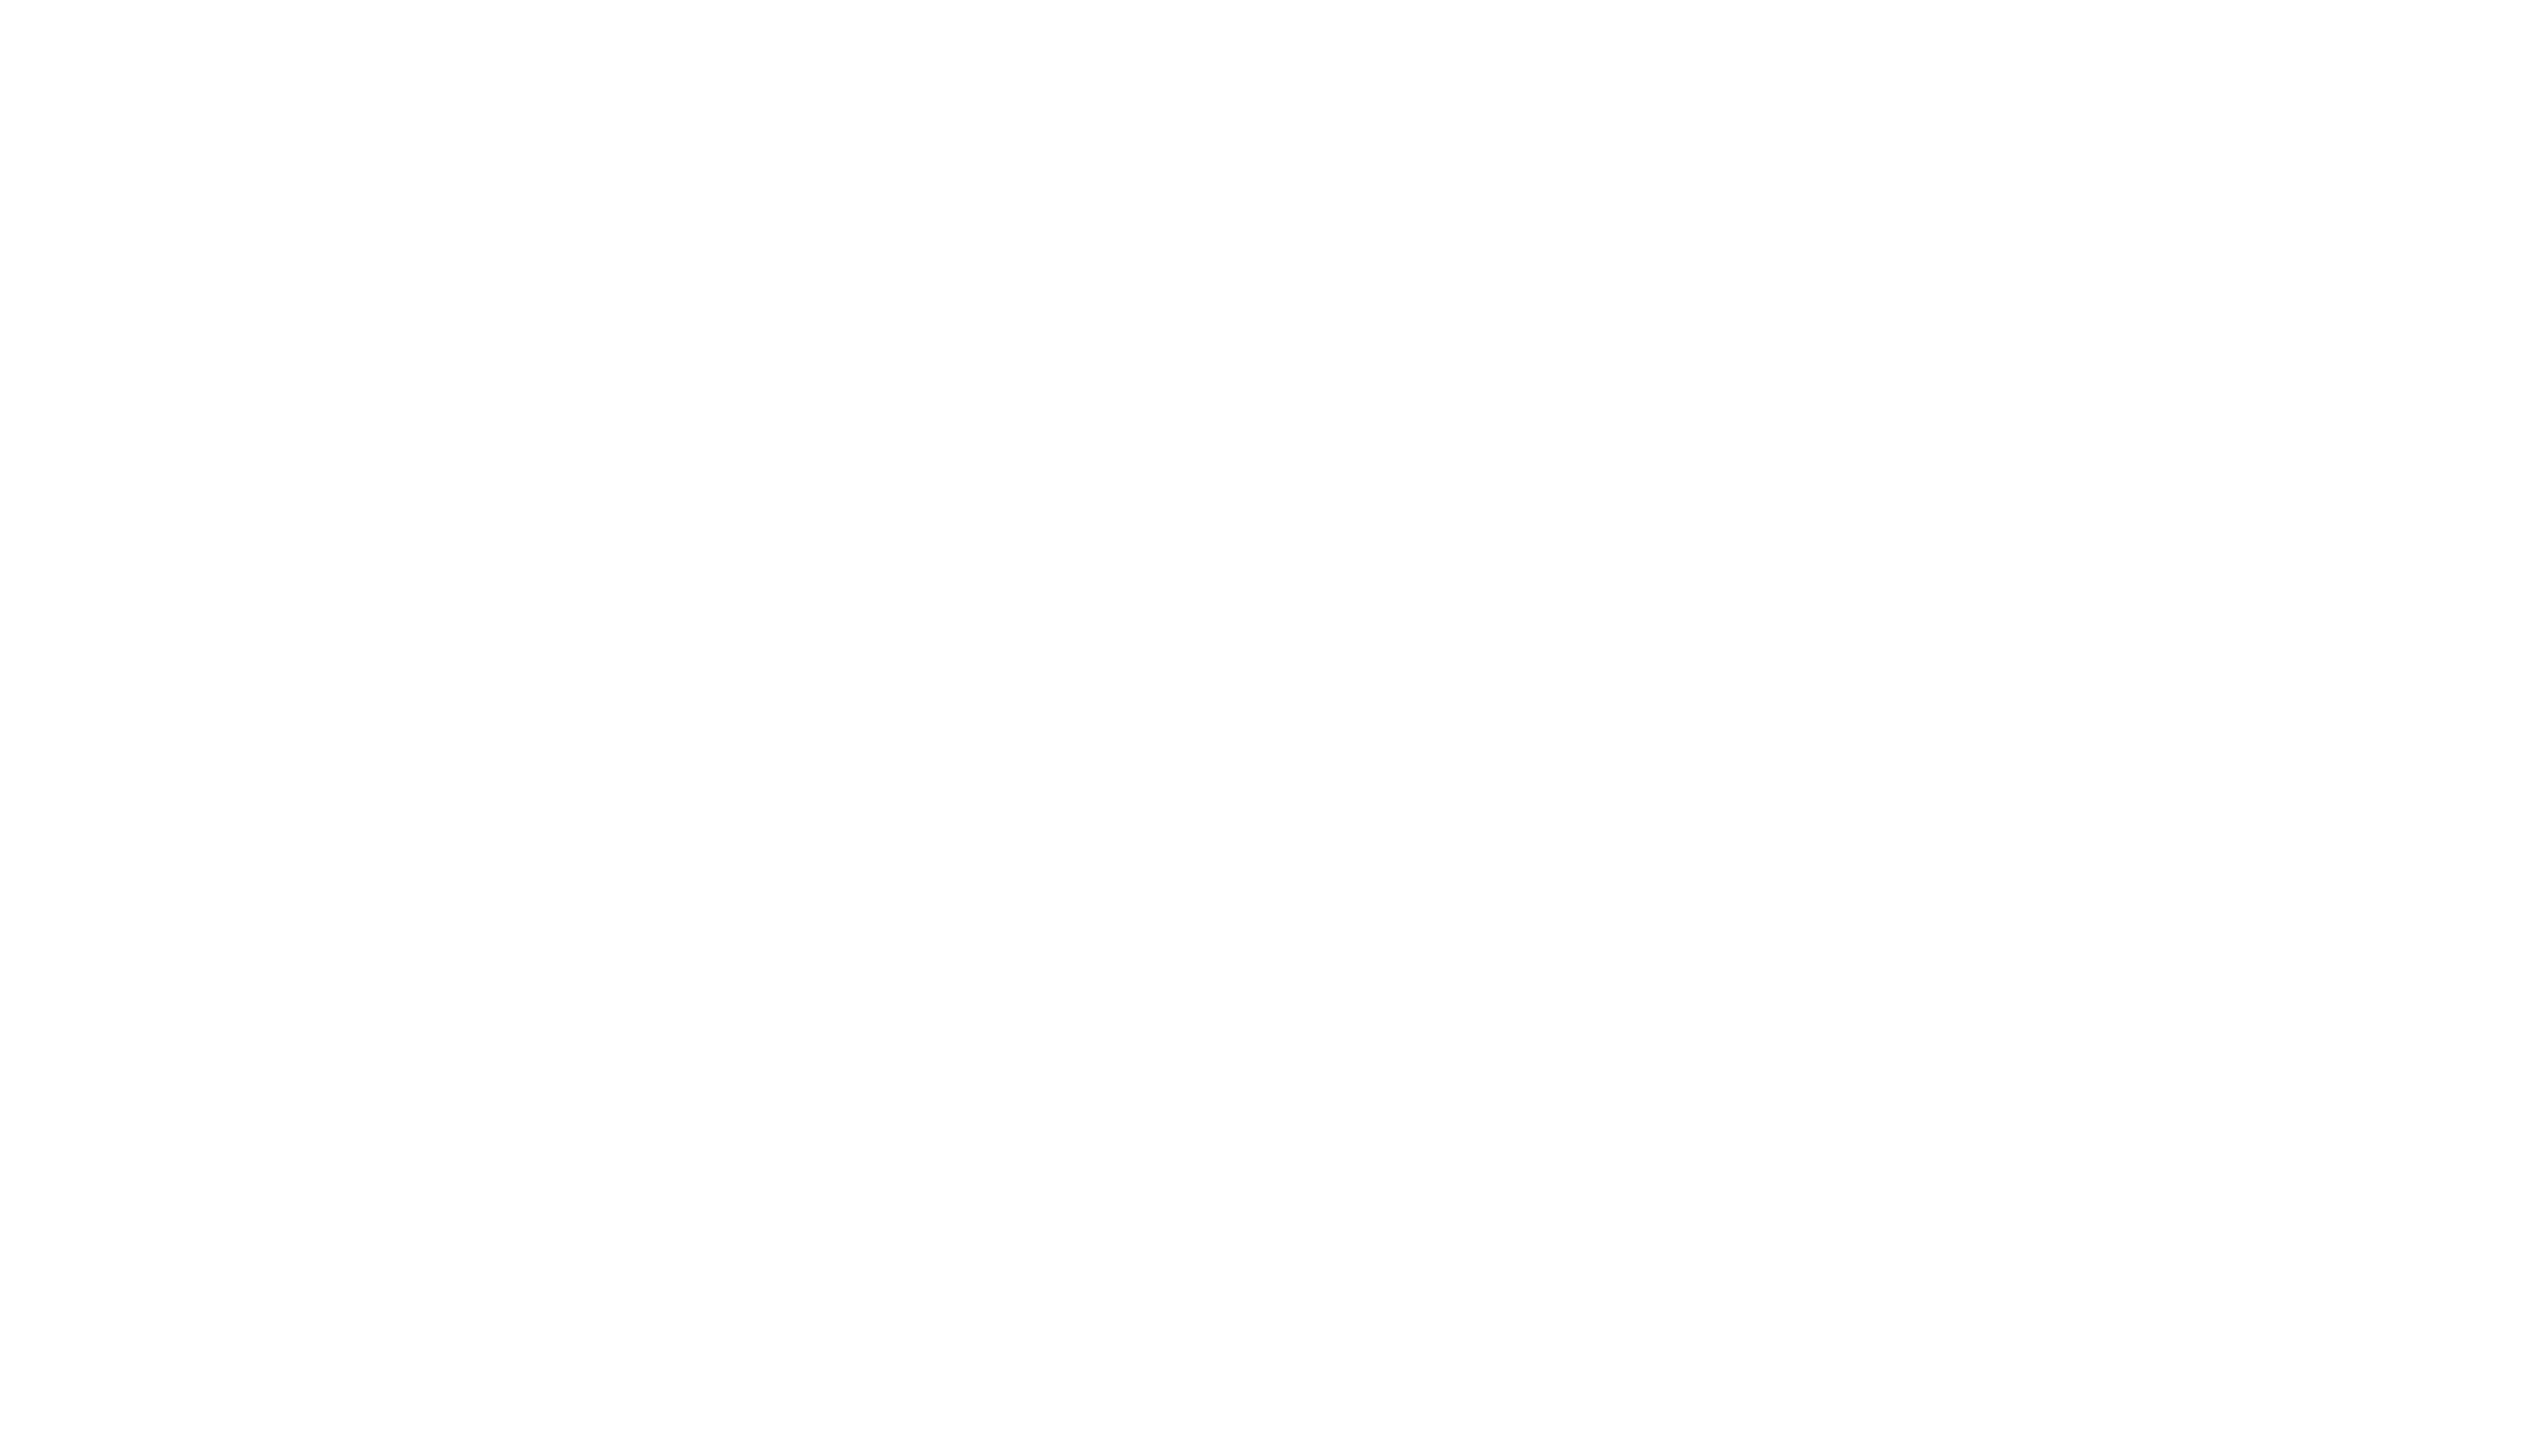 Idiart Law Group - Personal Injury and Immigration Attorneys